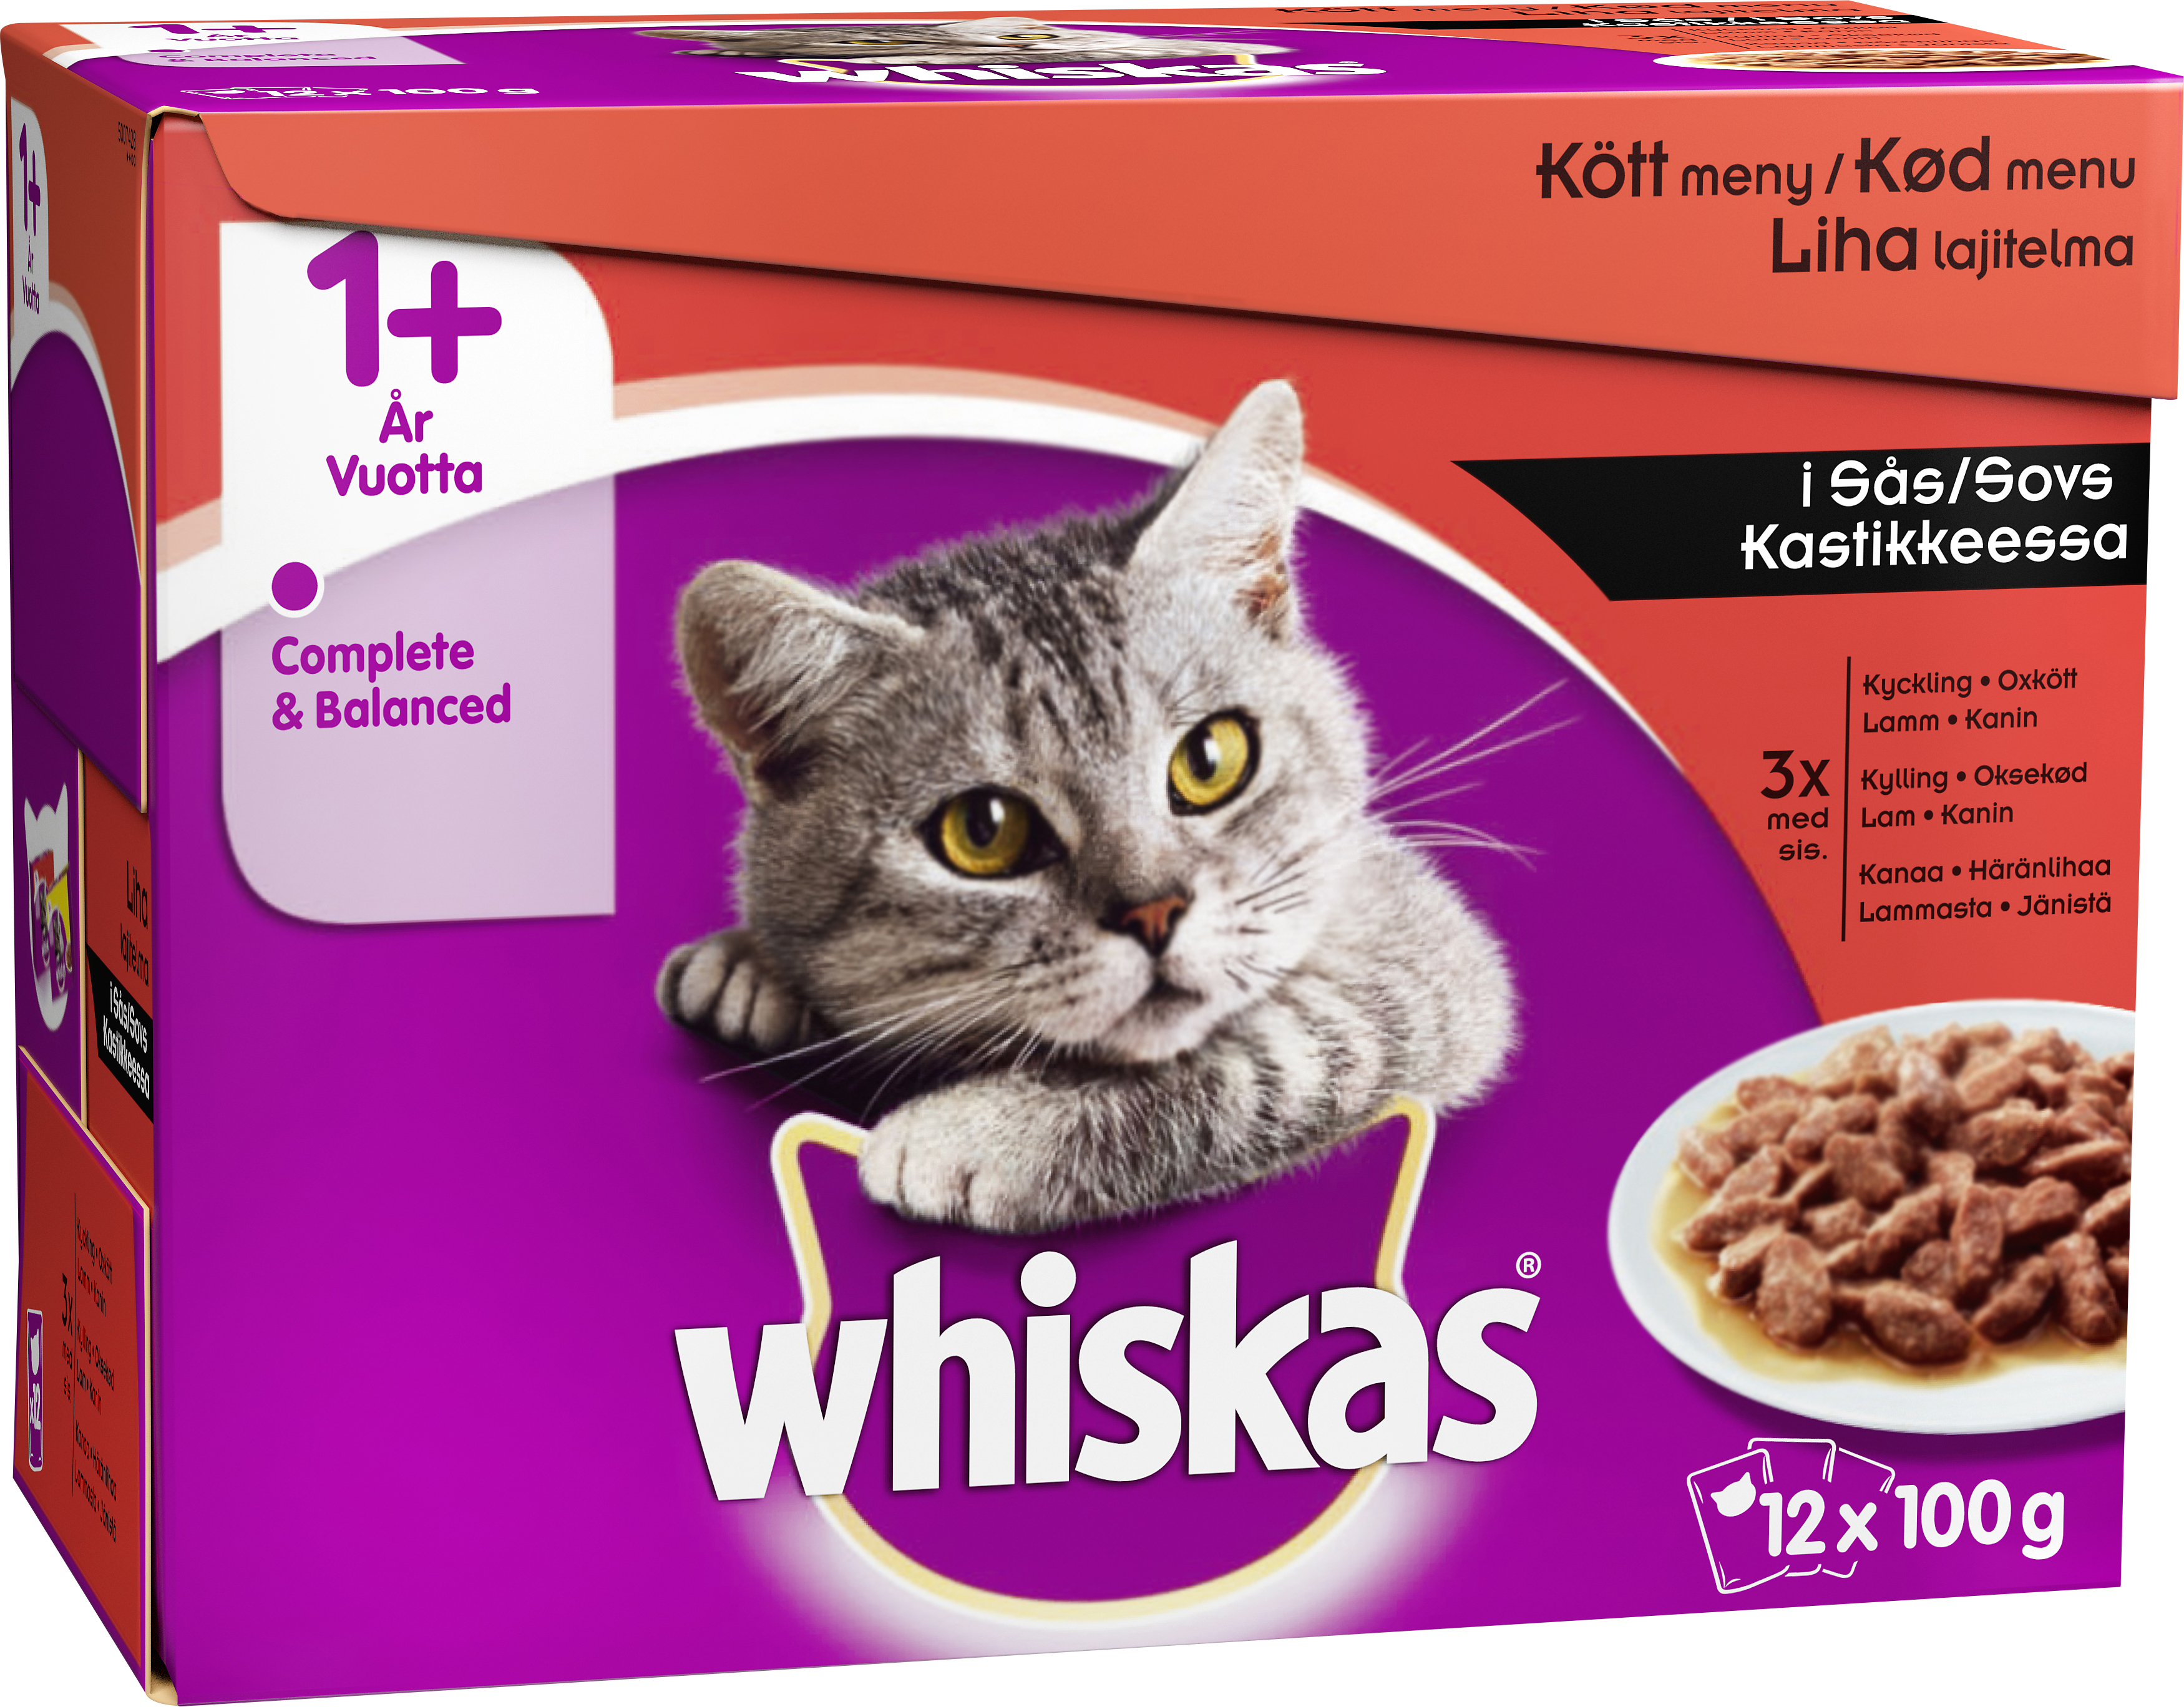 Kattmat Whiskas Menybox, 12 x 100 g